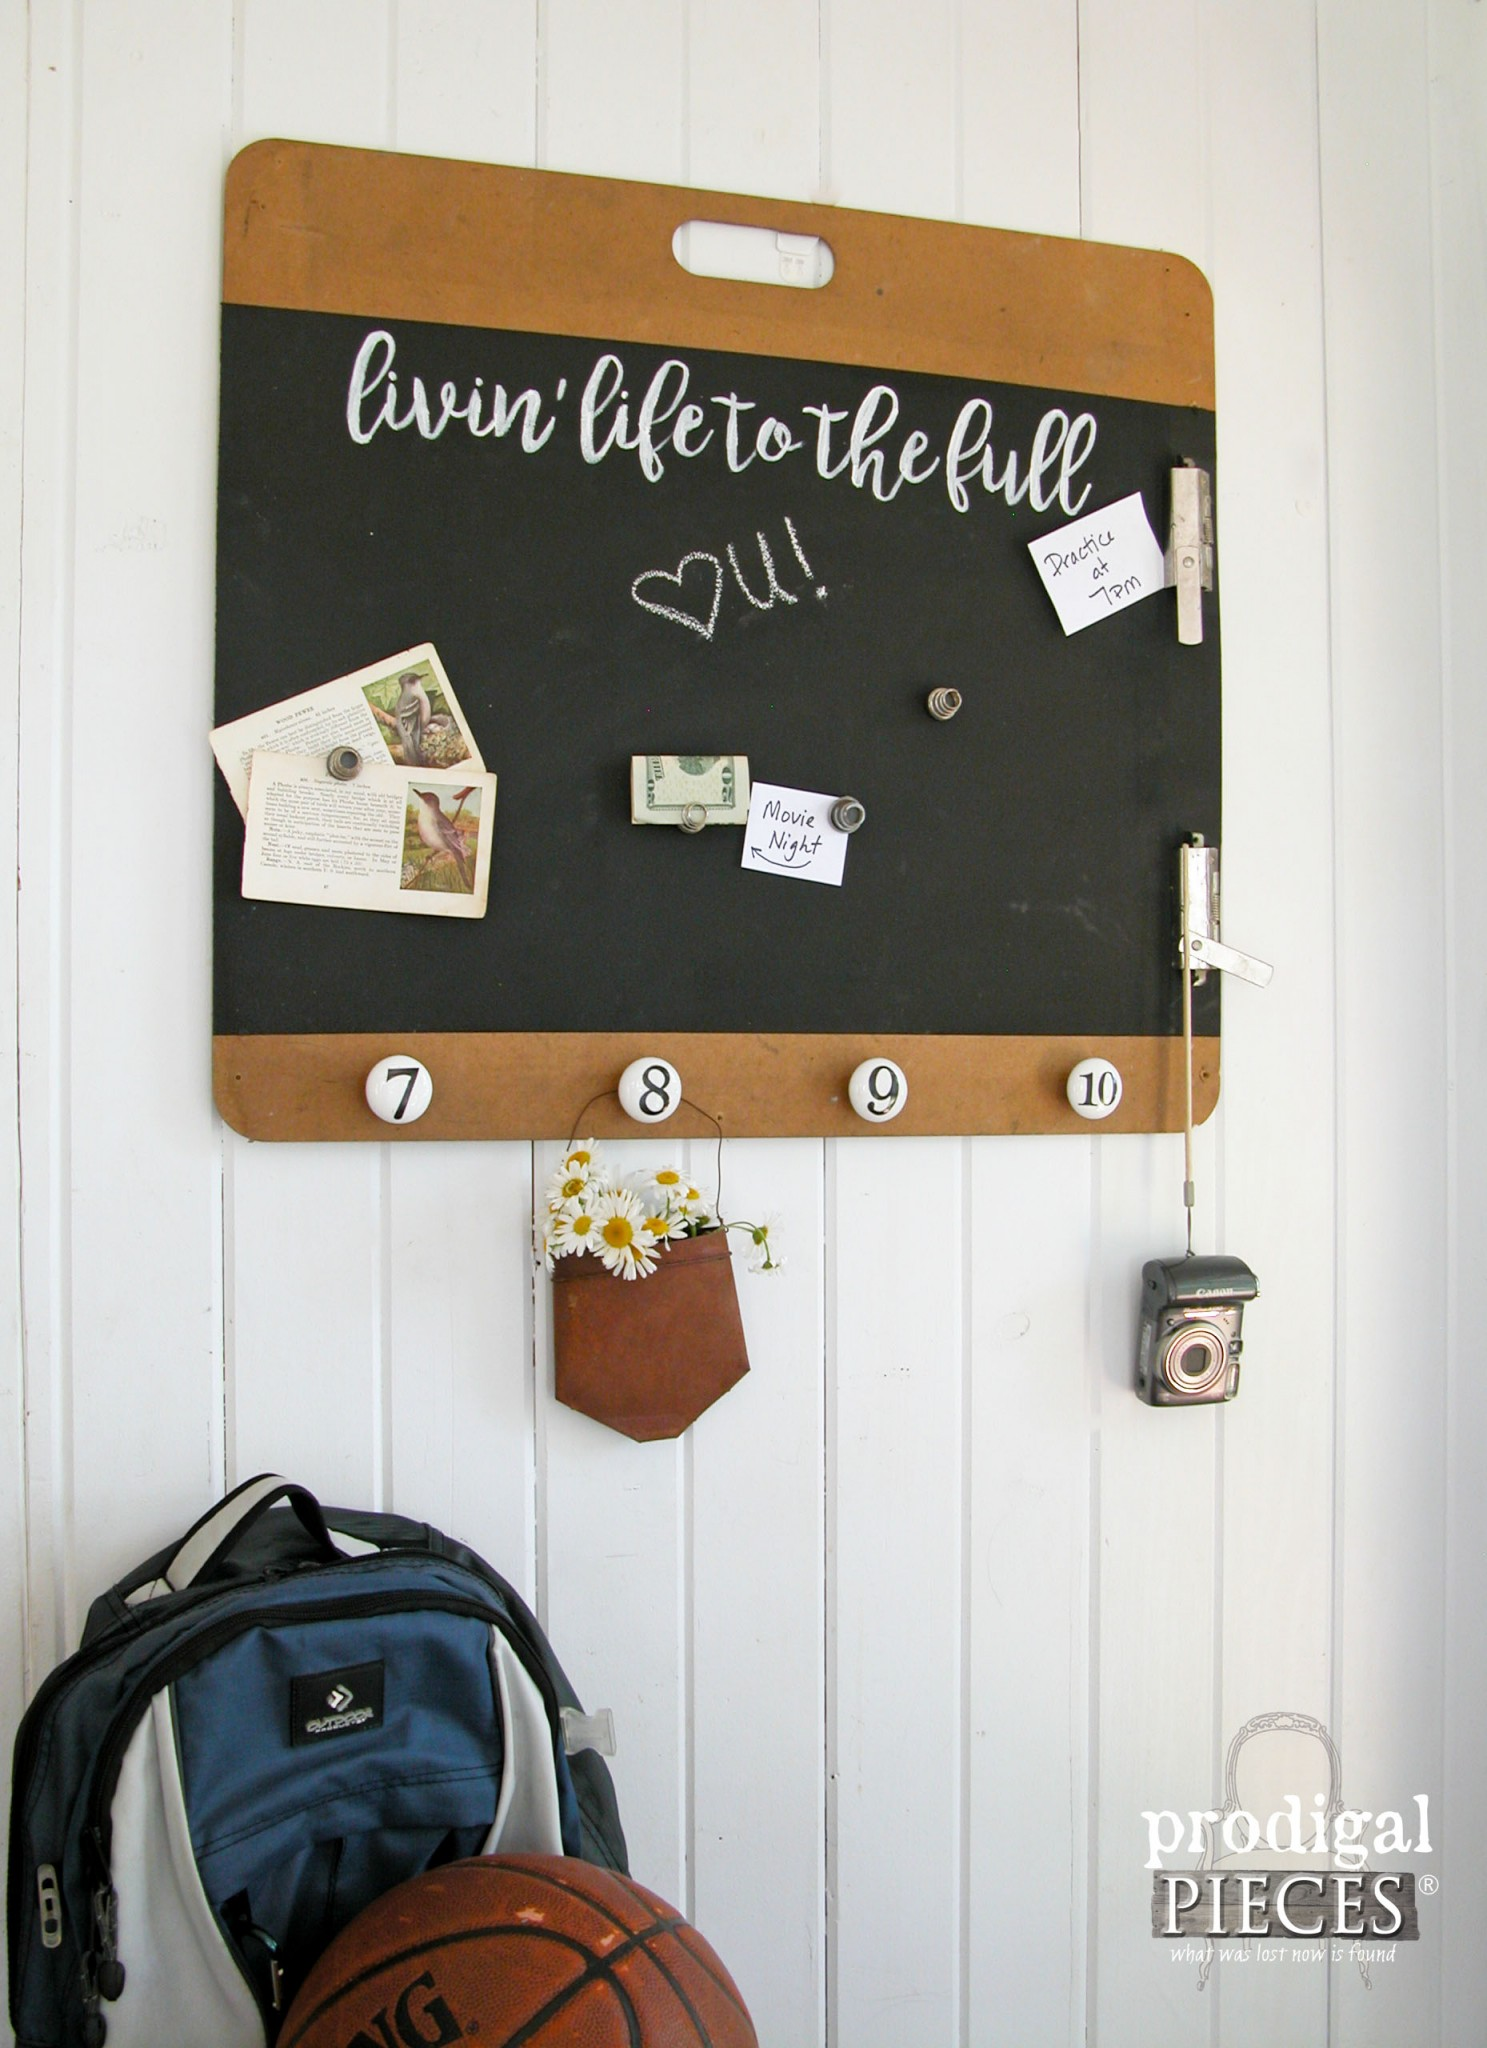 Vintage Fun Magnetic Message Board Upcycled by Prodigal Pieces | www.prodigalpieces.com